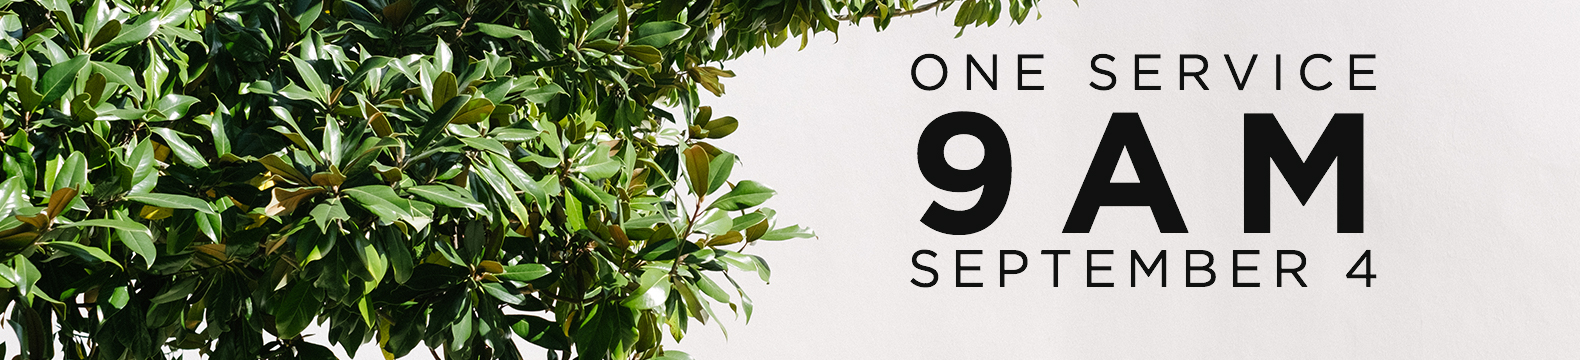 Reminder: 9am Service Only This Weekend!